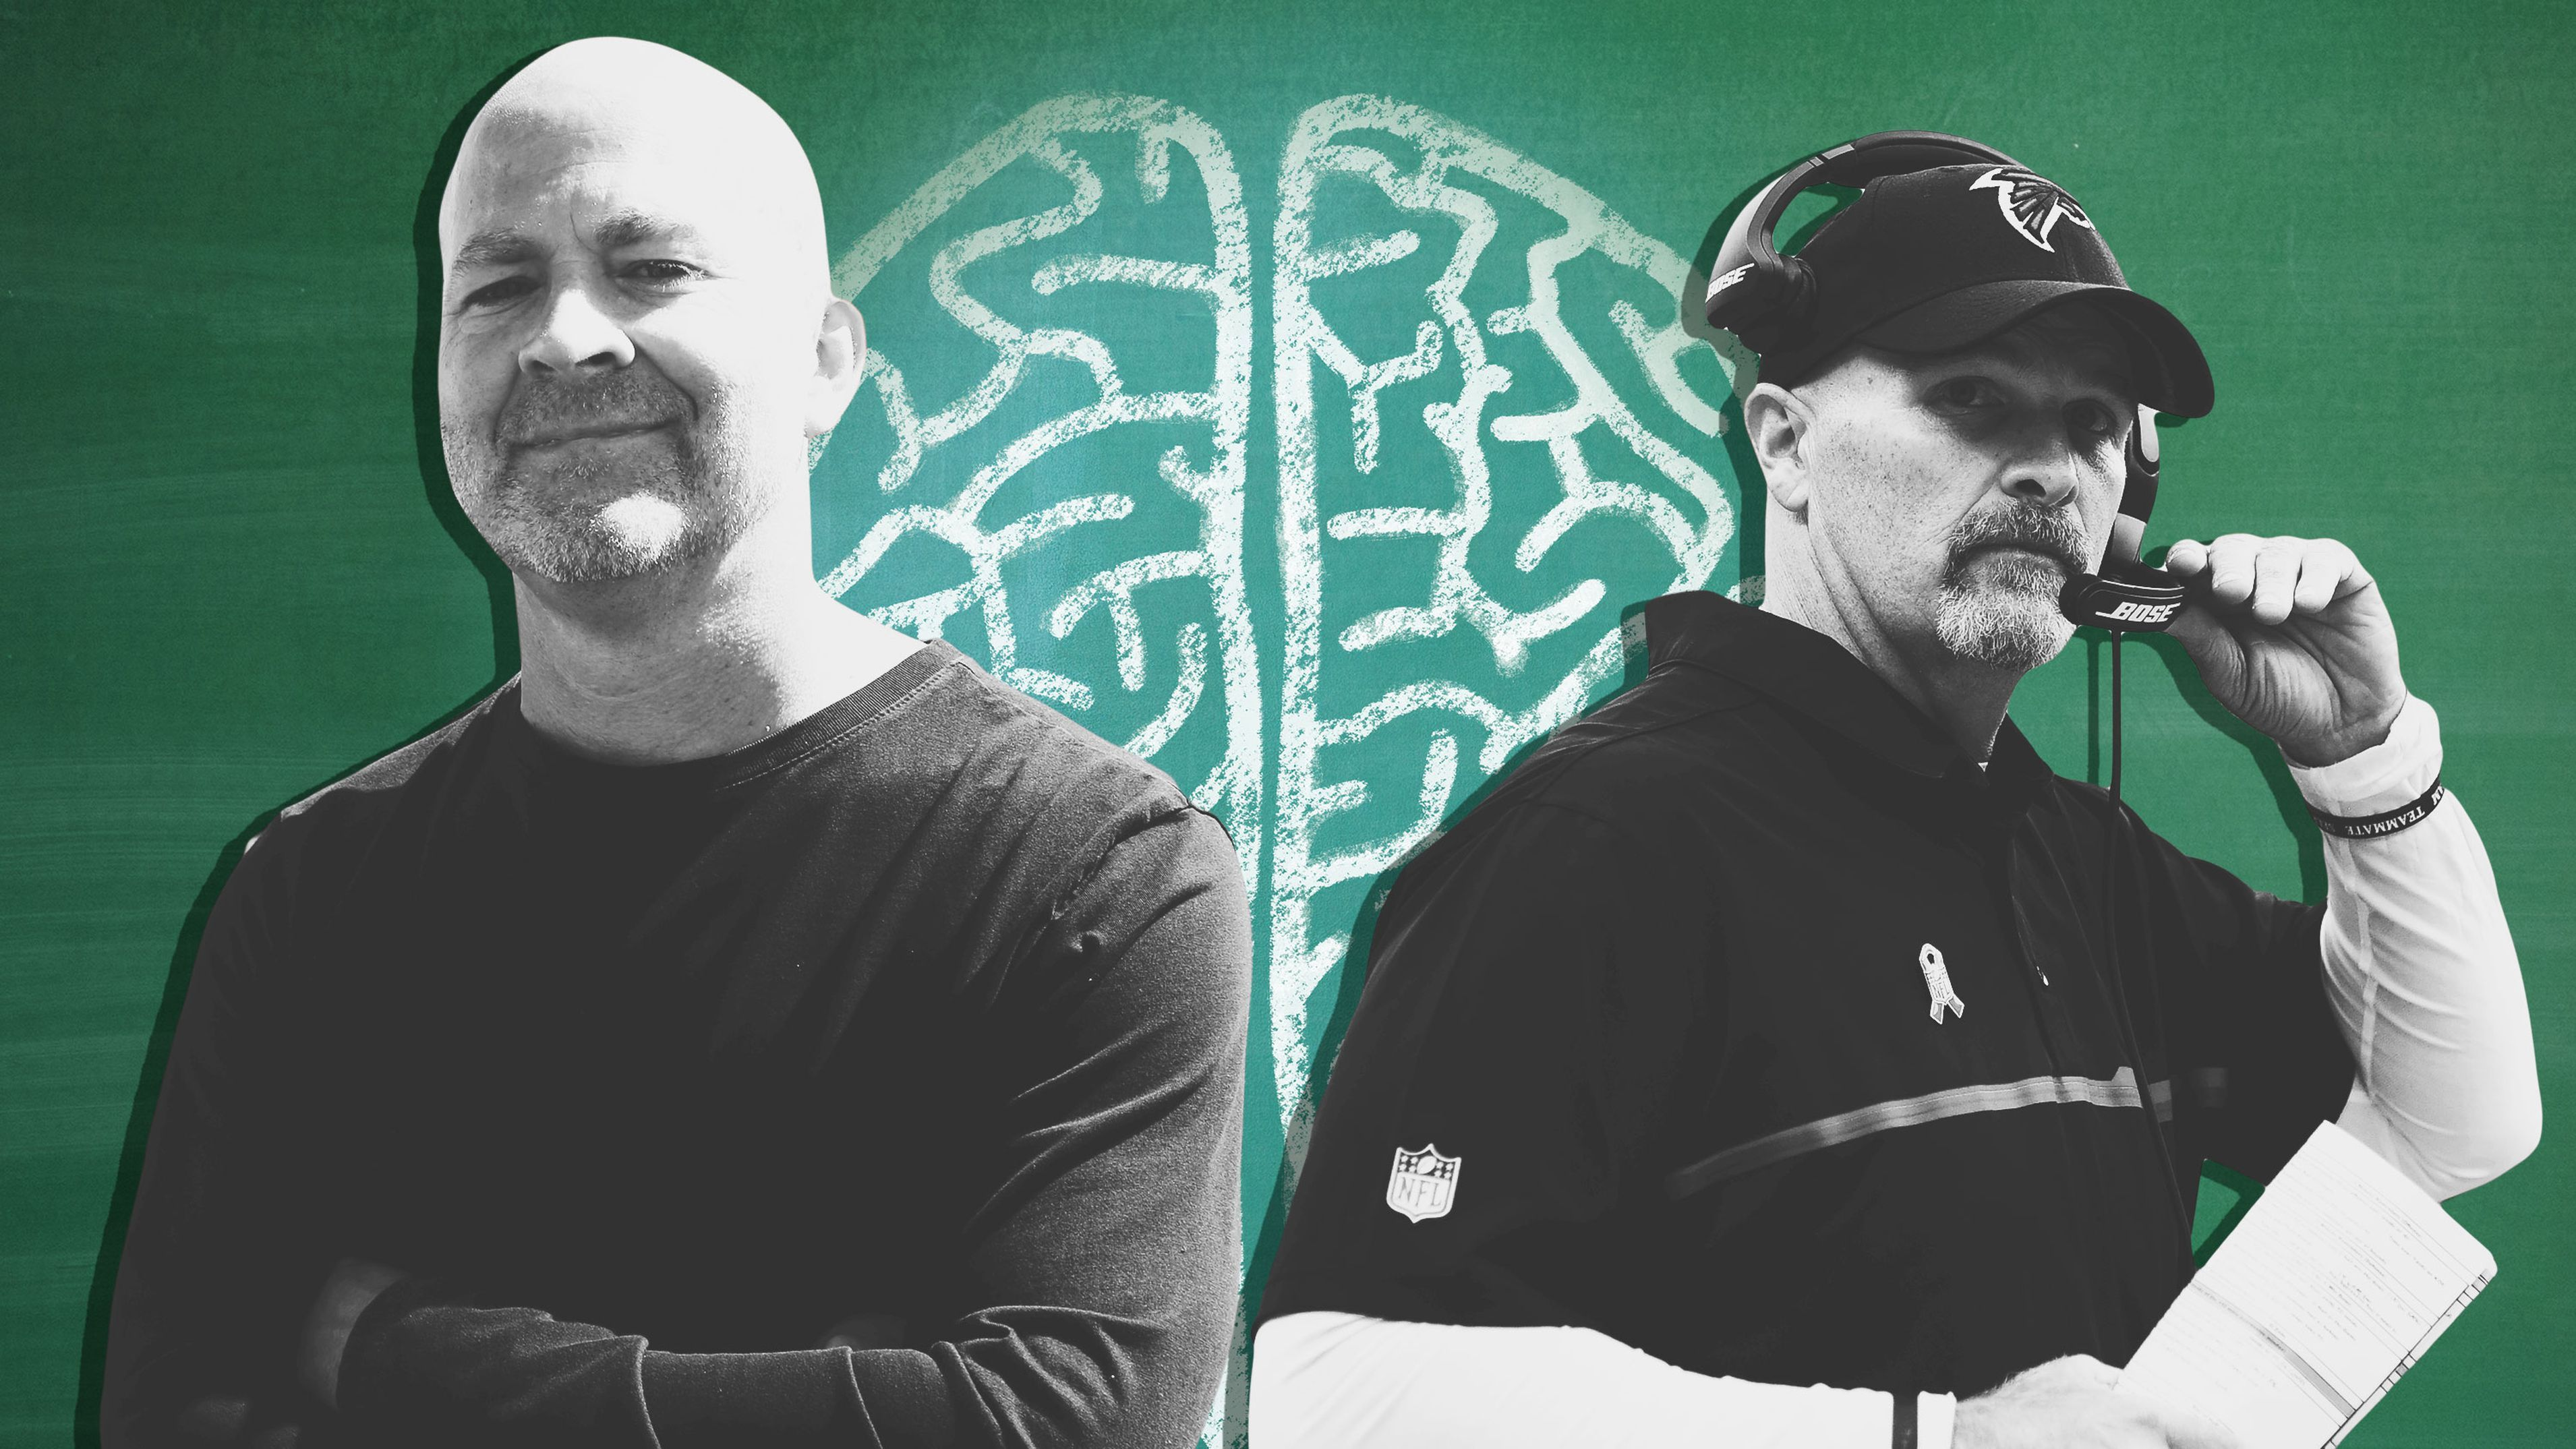 The Nfl S Mindfulness Movement Has A New Look In 2020 Sports Psychology Pete Carroll Nfl